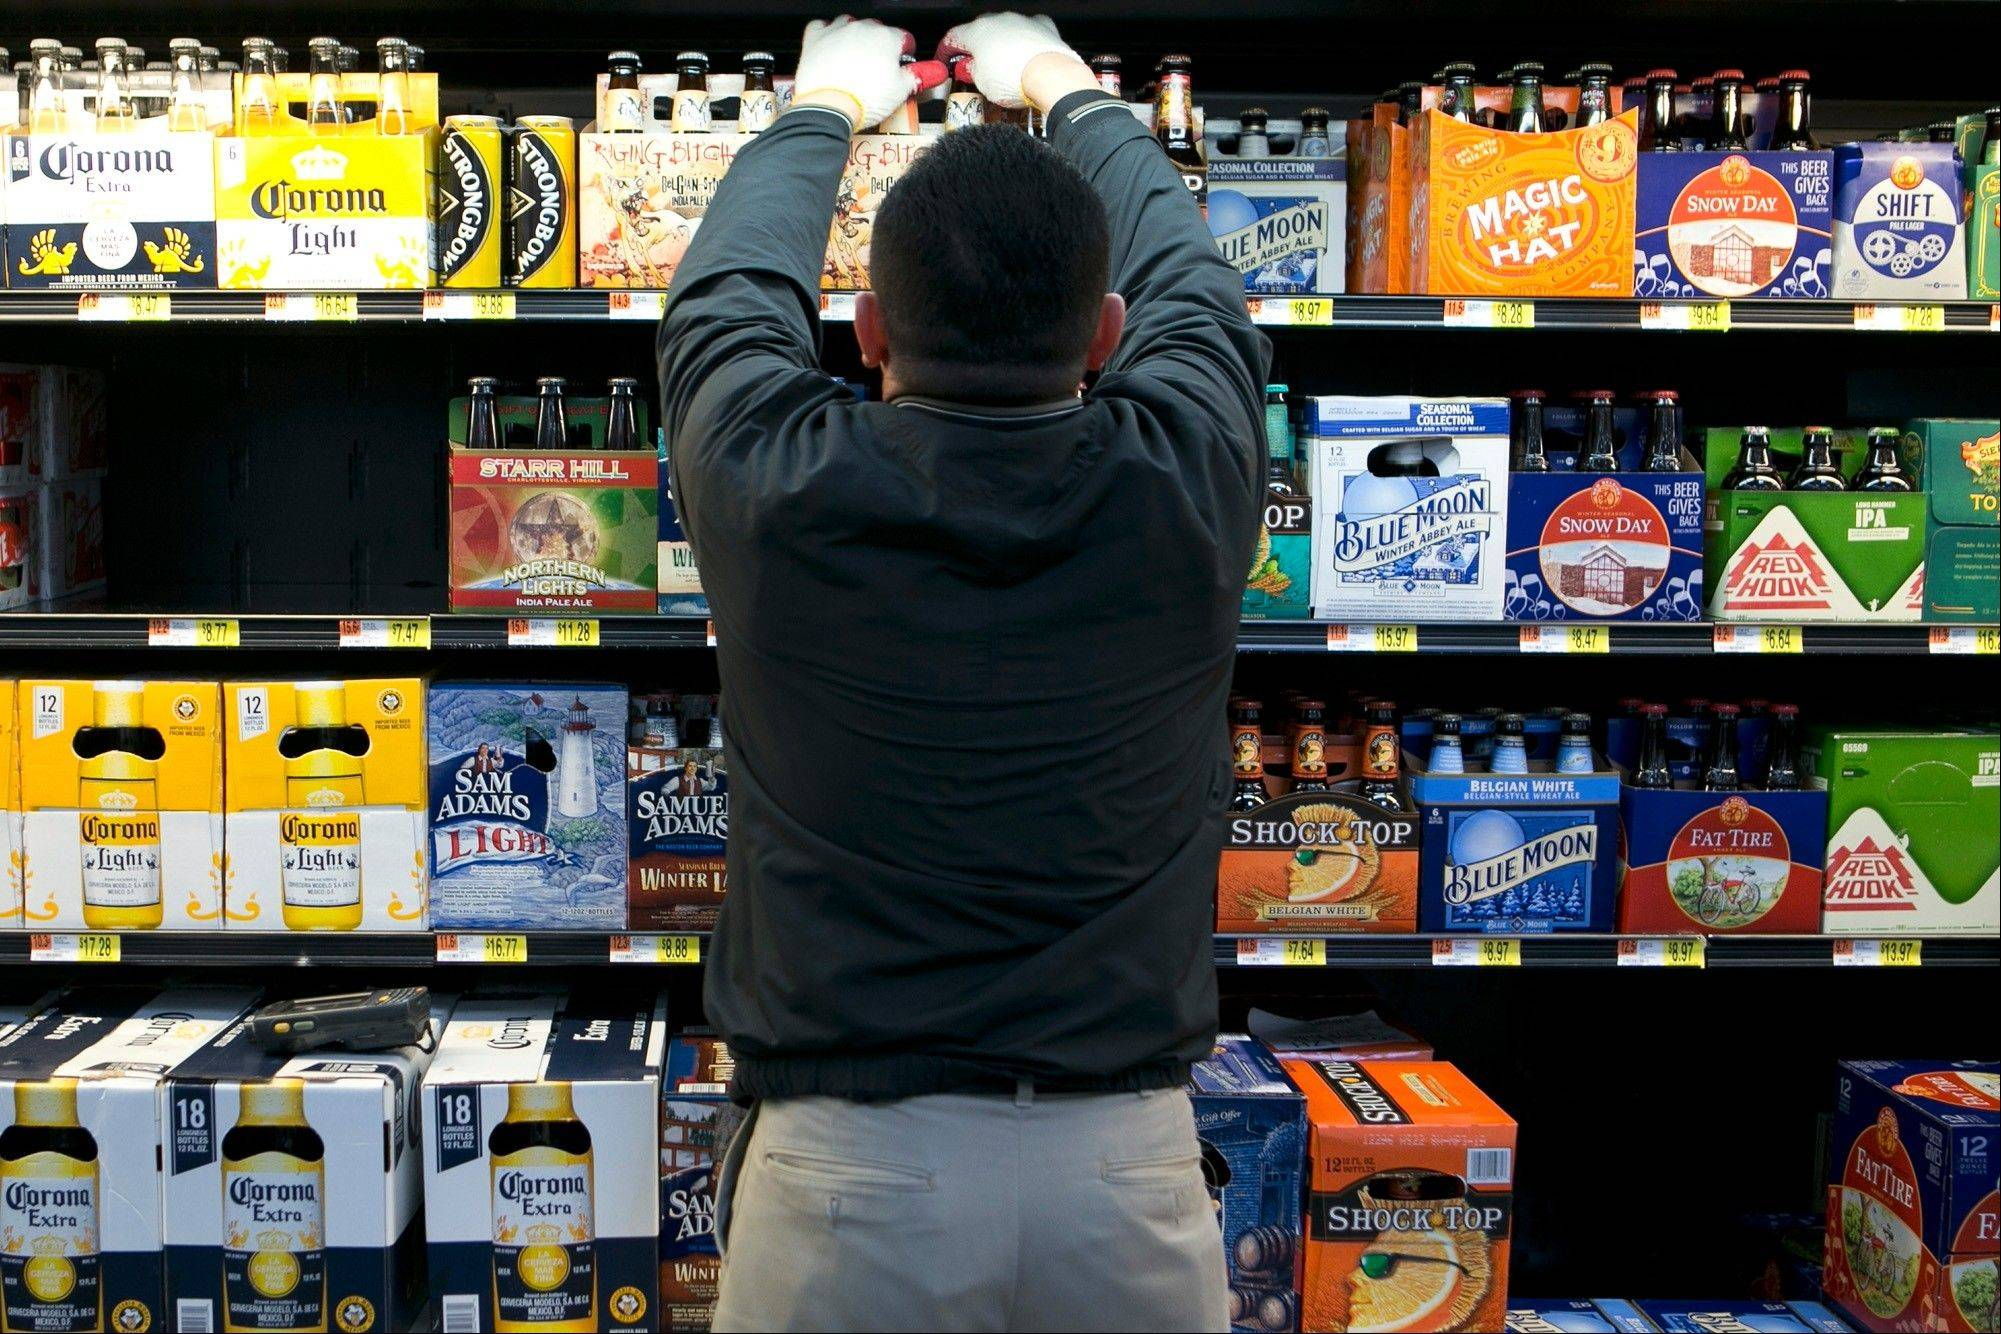 Wal-Mart has doubled the number of alcohol buyers to 12 and offered discounts on a range of brands, from mainstream Coors to such craft beers as Deschutes. It ditched slow-selling products to make way for beer and is even selling it in garden centers.